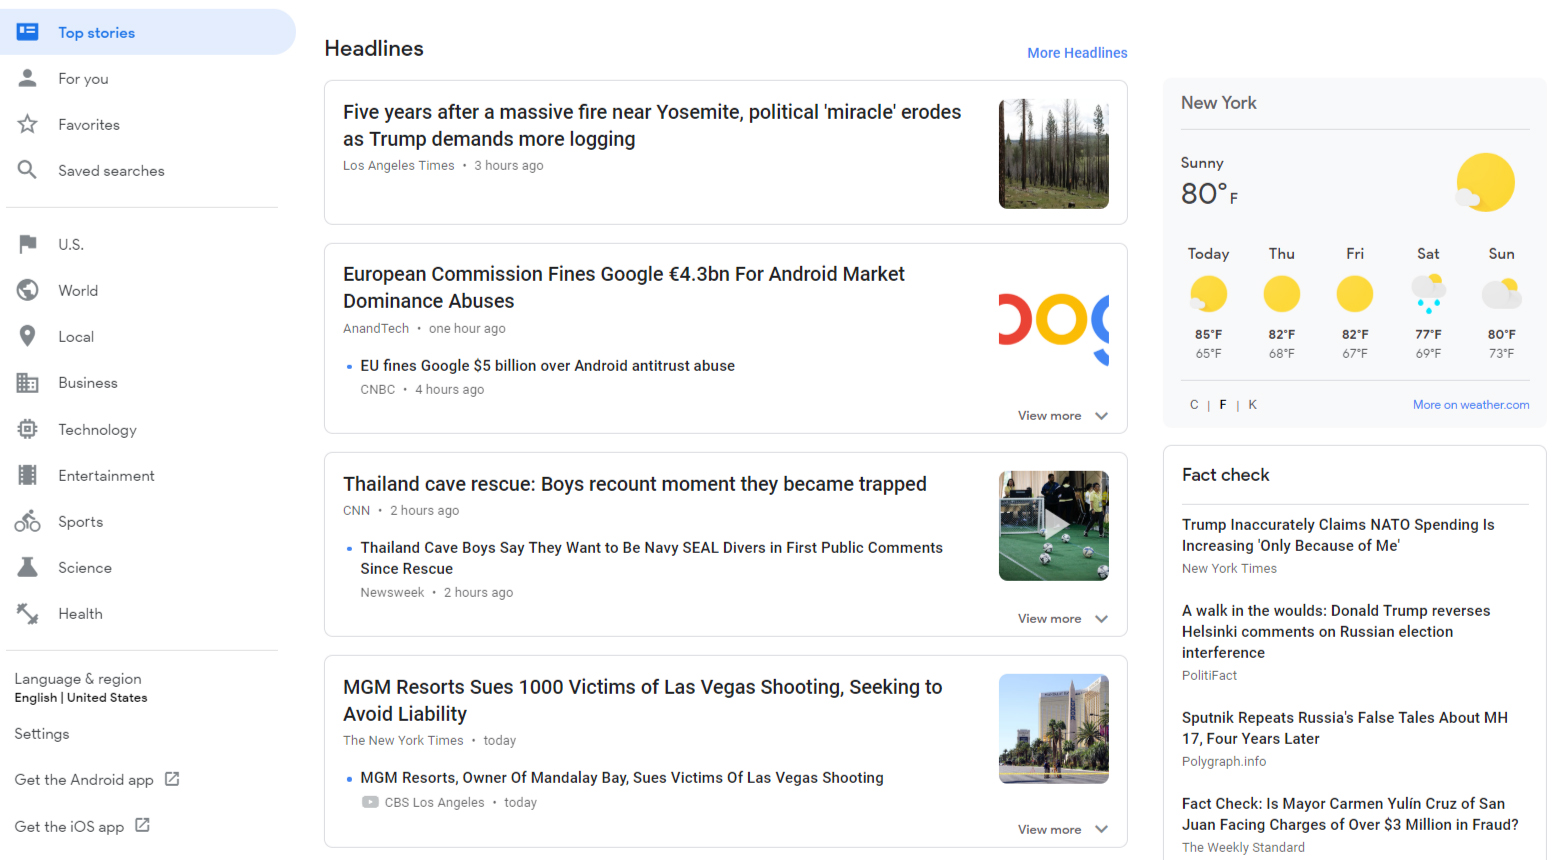 Guide to Google News Chainlink Relationship Marketing